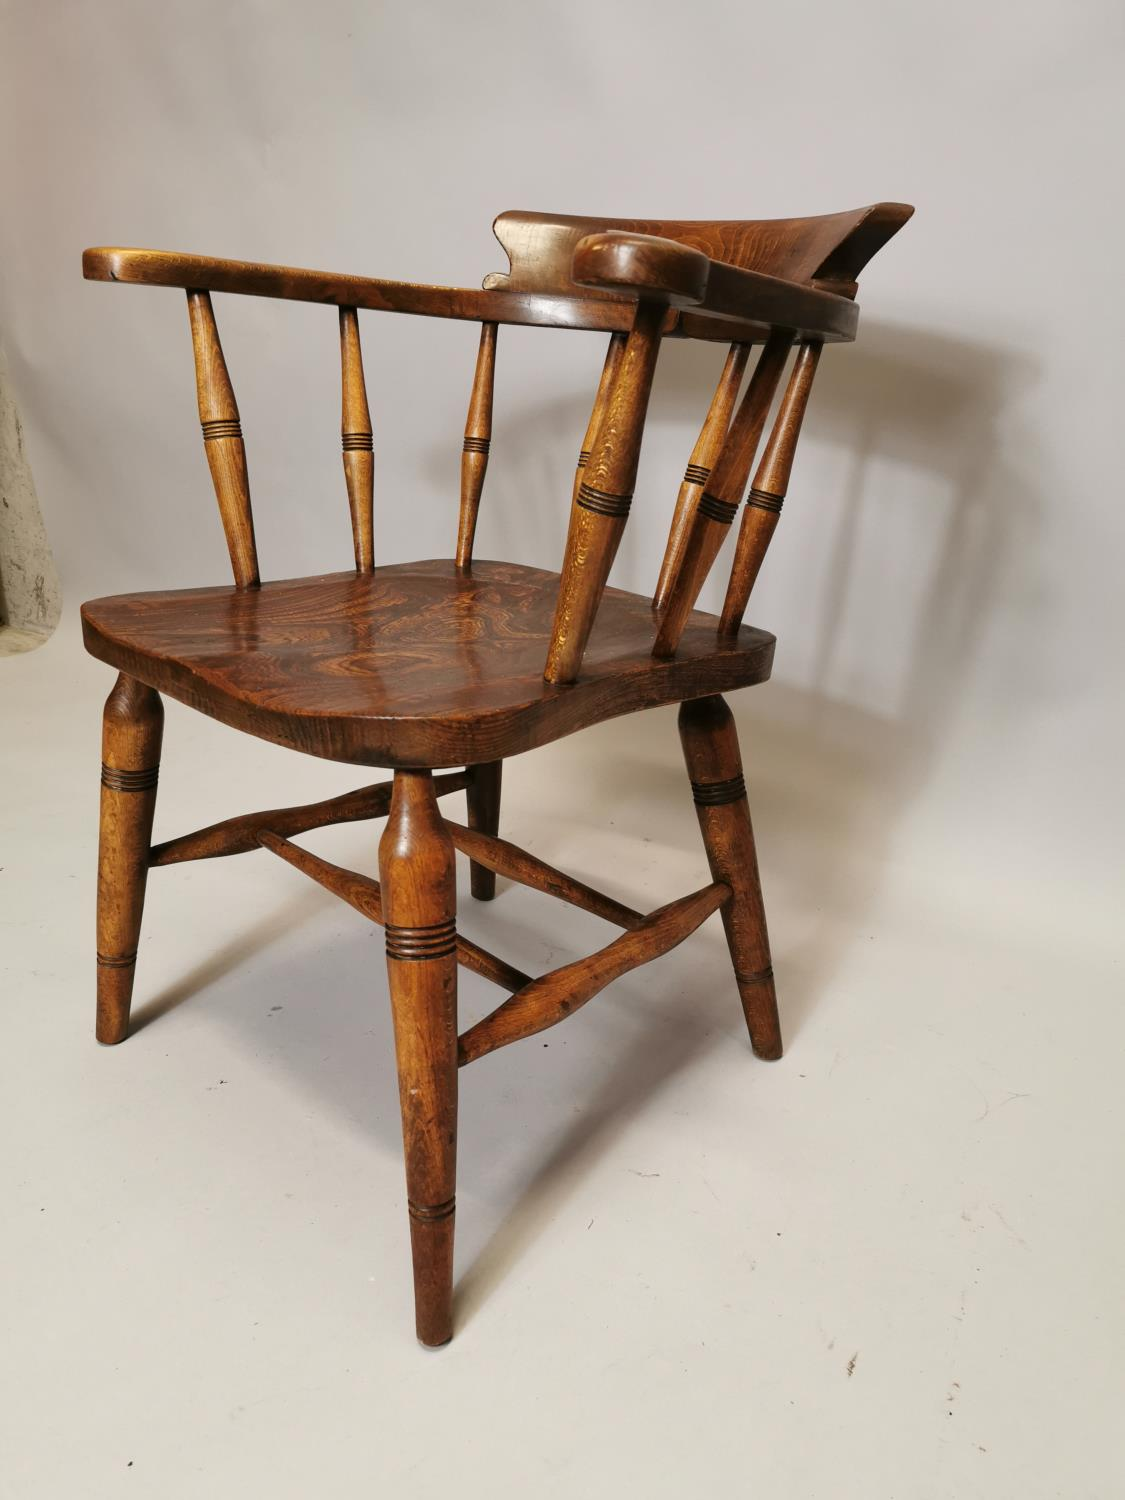 Early 20th C. Ash and elm smoker's bow - Image 4 of 7